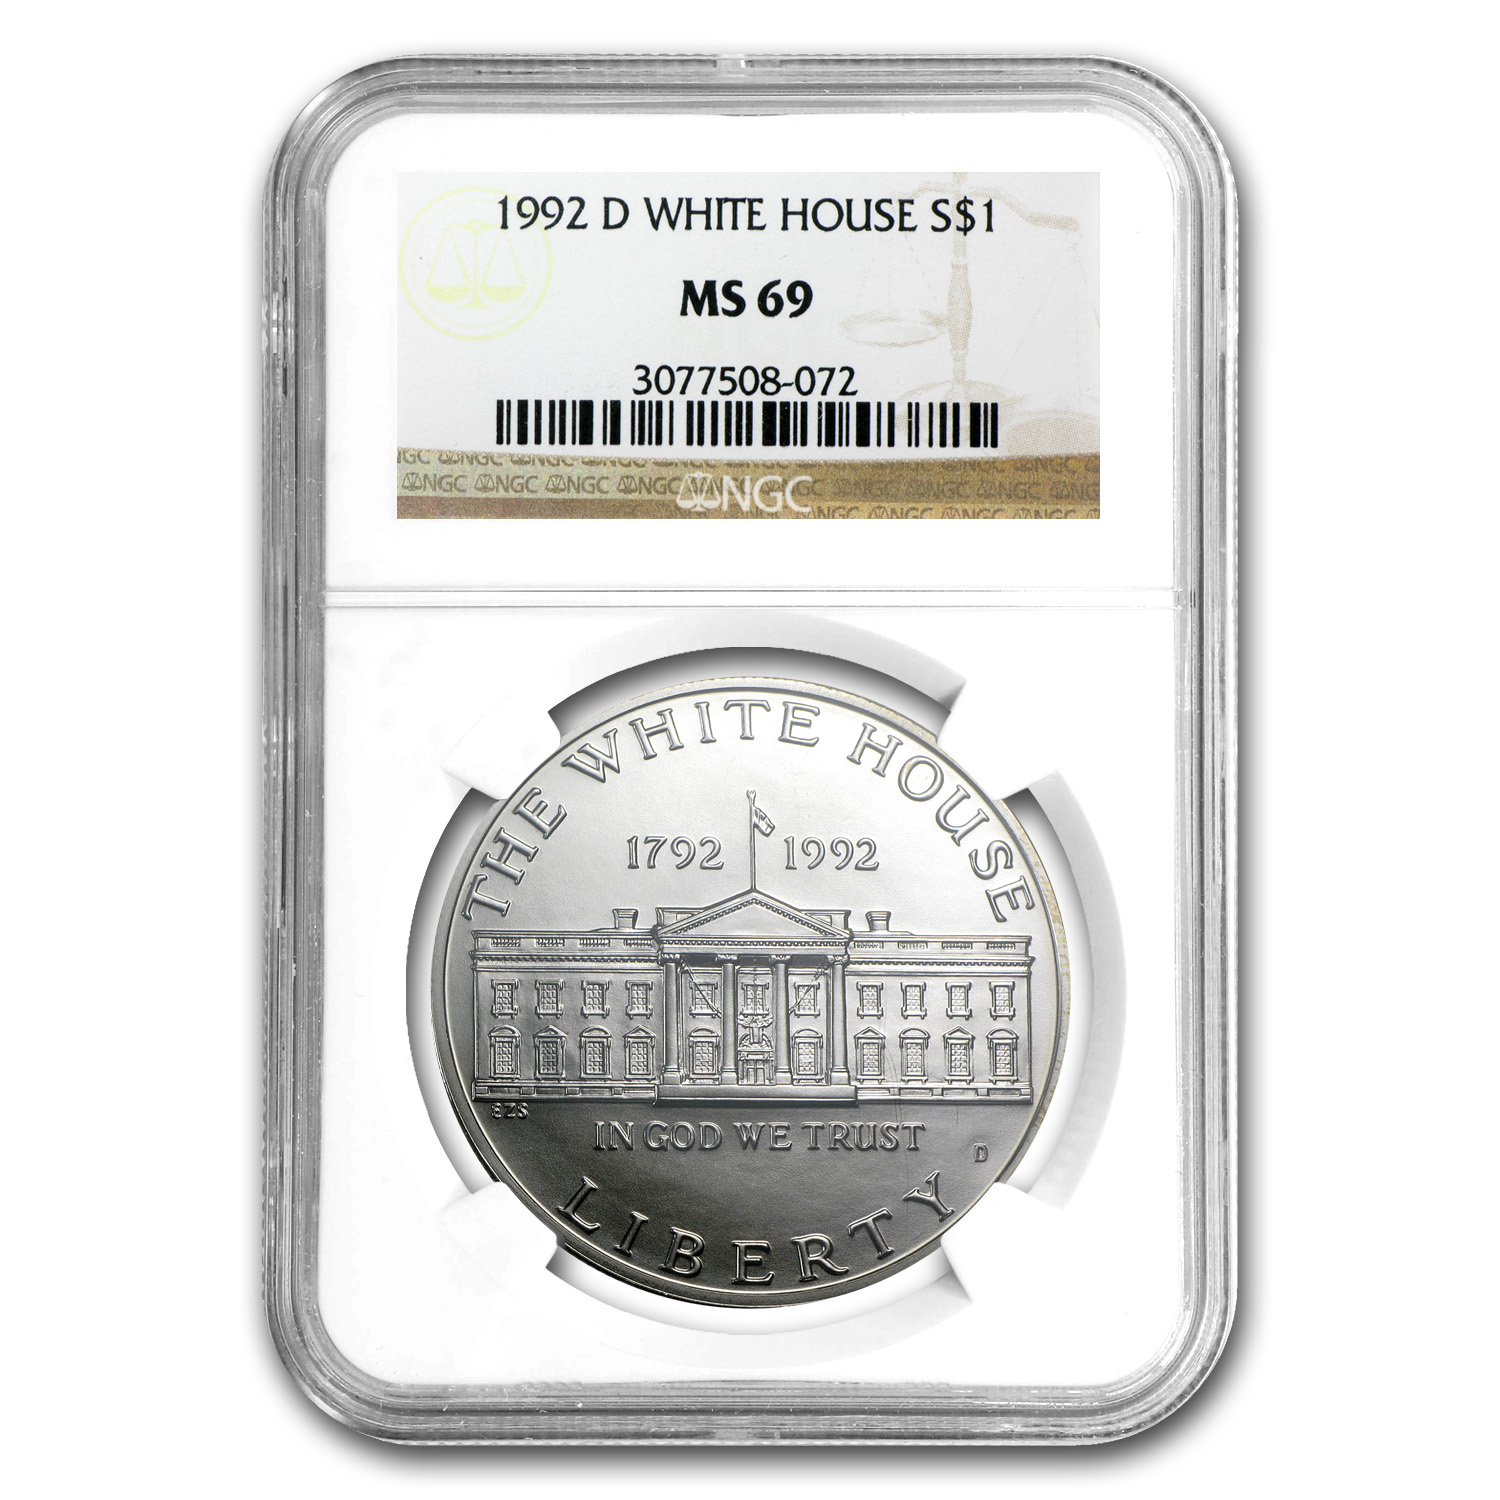 1992-D White House $1 Silver Commemorative MS-69 NGC